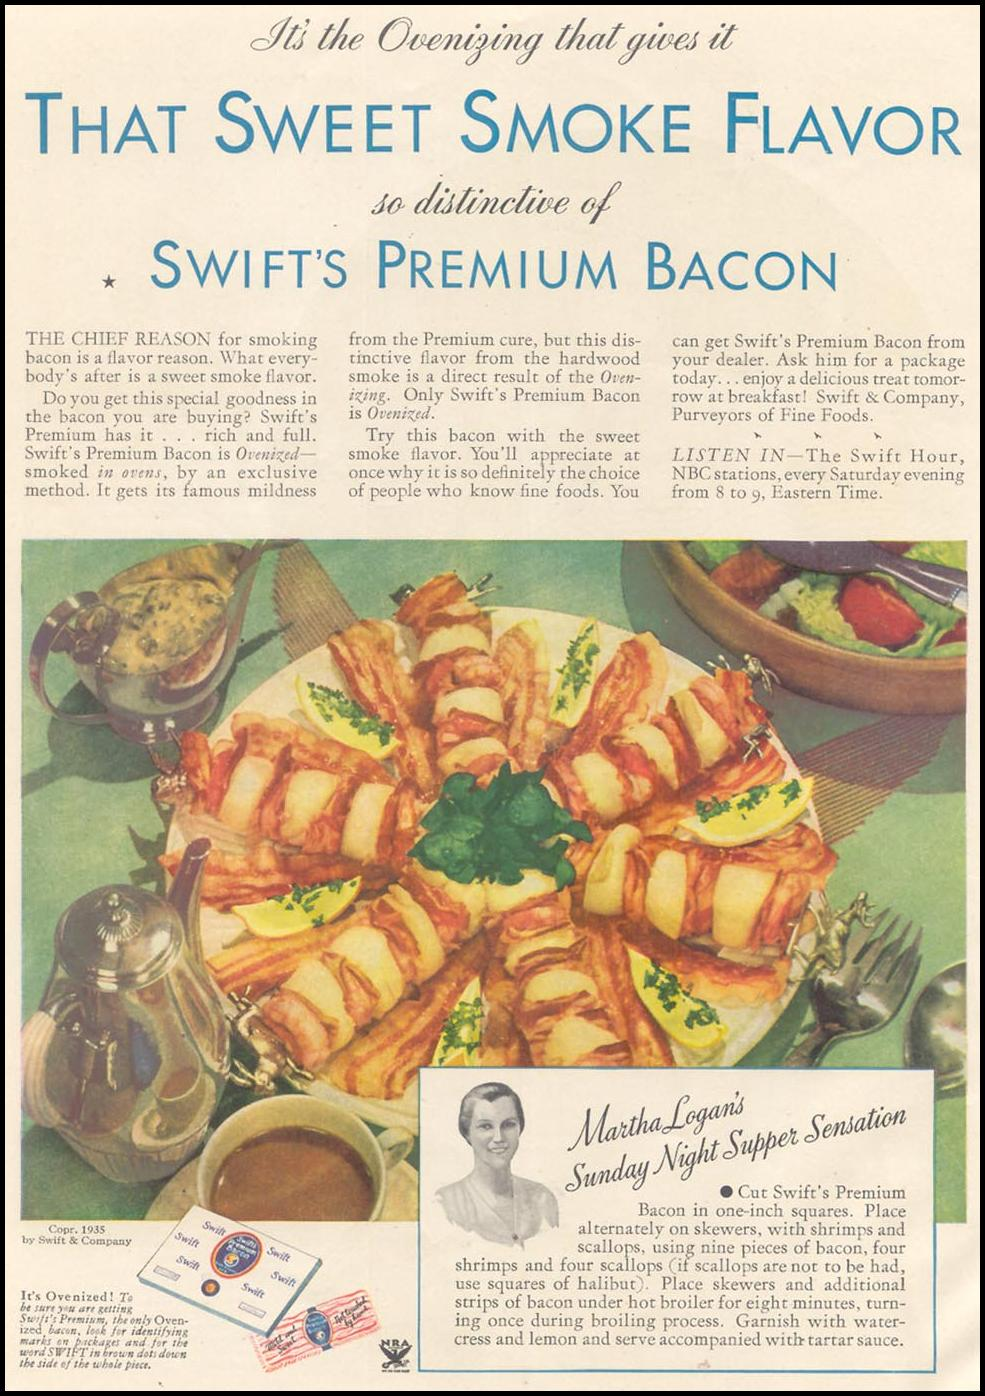 SWIFT'S PREMIUM BACON